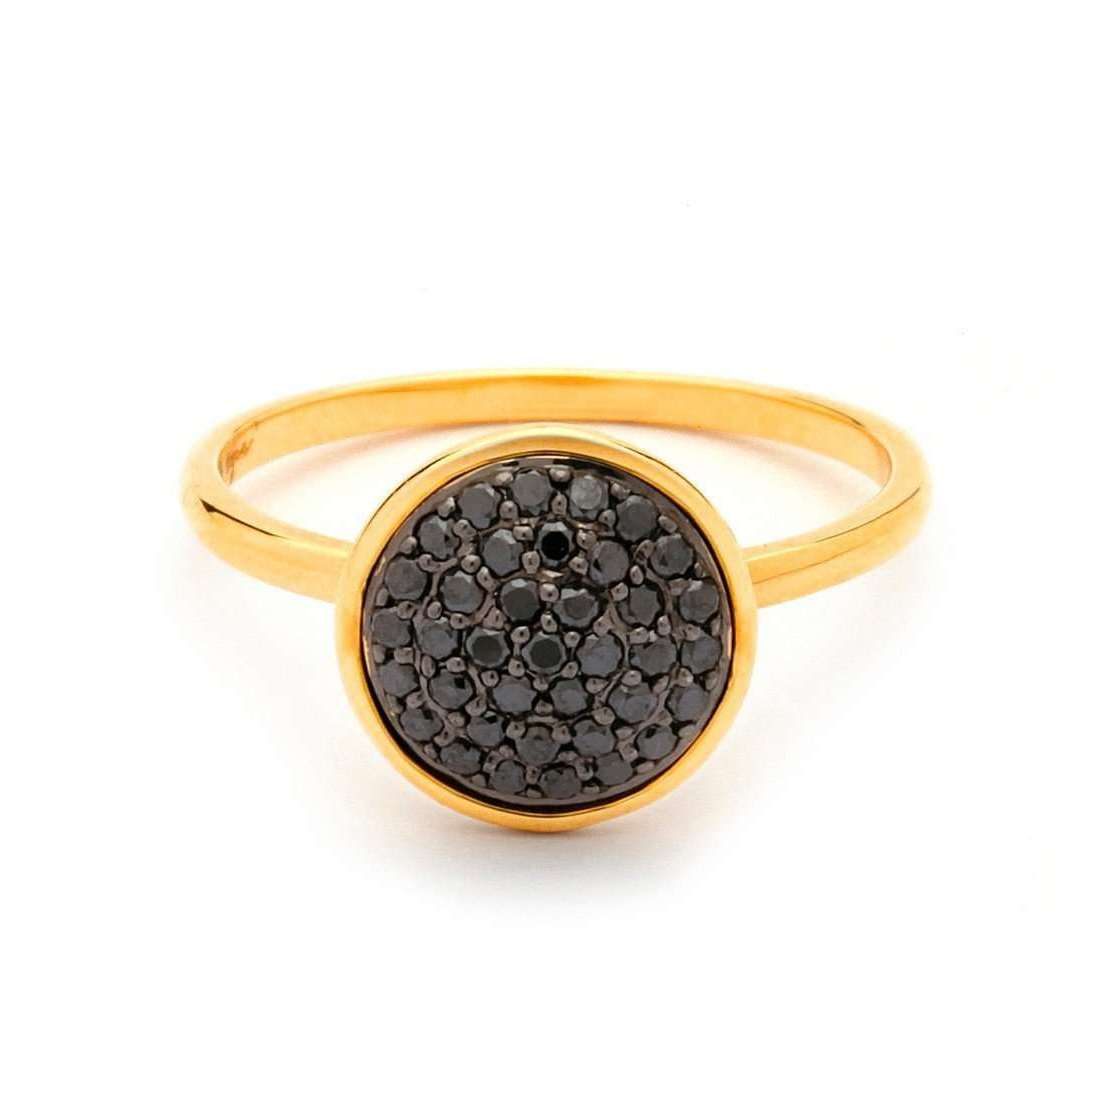 Syna 18kt Mini Black Diamond Ring - UK N - US 6 1/2 - EU 54 0YsEADpP